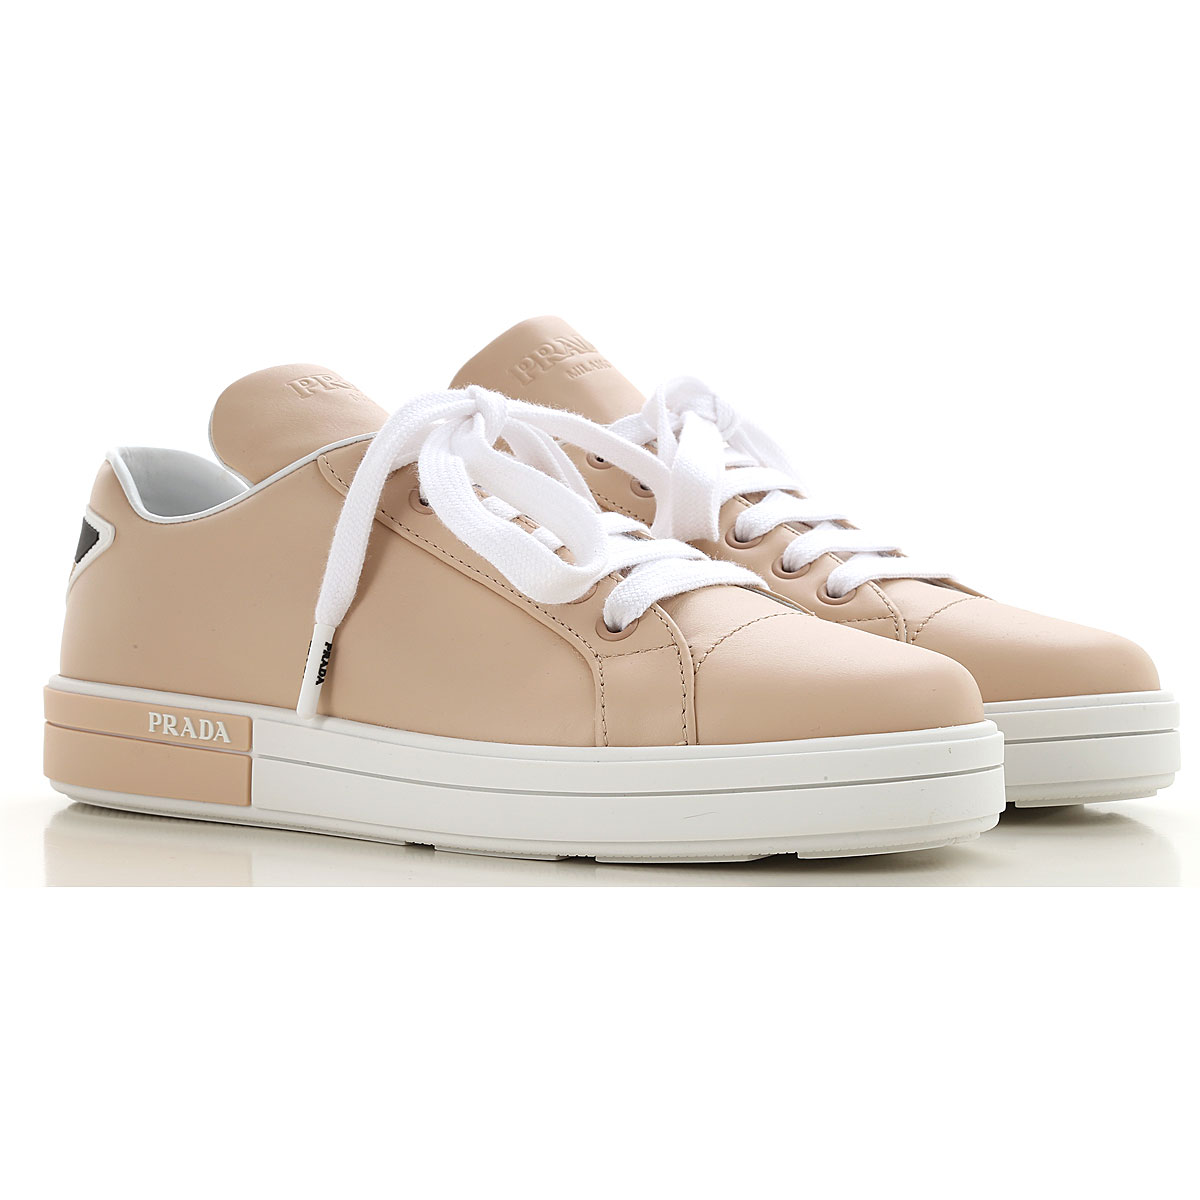 Prada Sneakers for Women, Pale Pink, Leather, 2017, 10 5.5 6 6.5 7 7.5 8.5 9.5